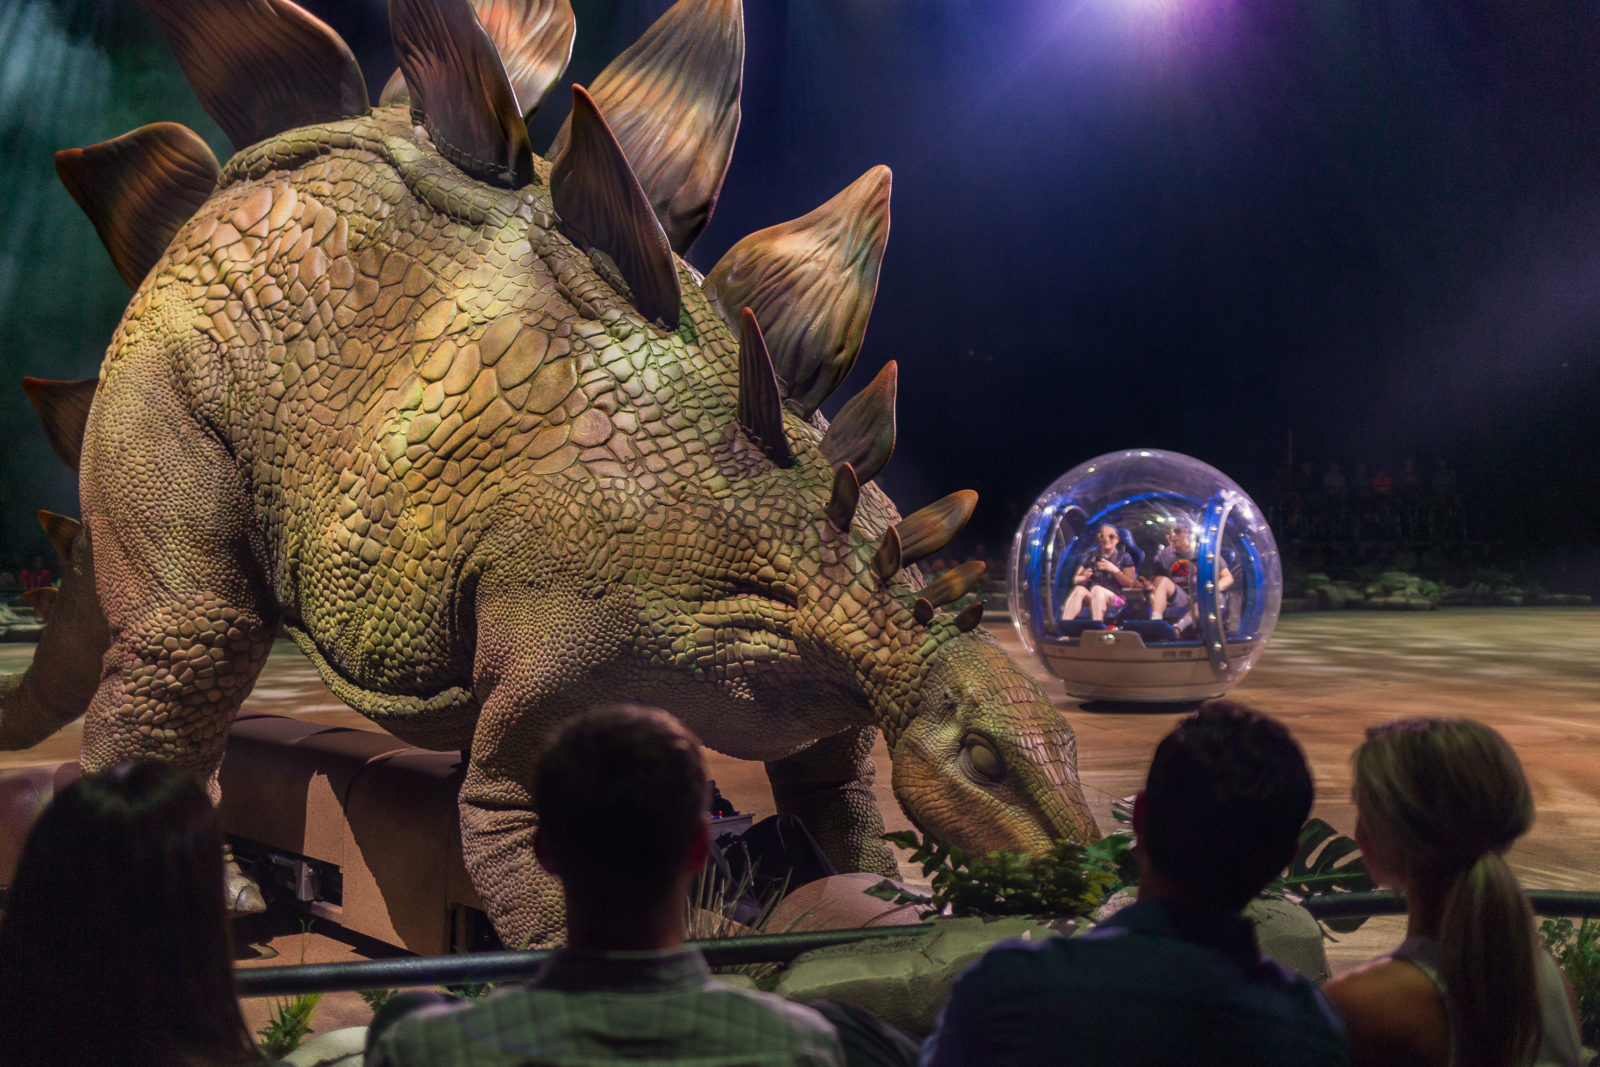 Jurassic World Live Tour Amway Center January 2020